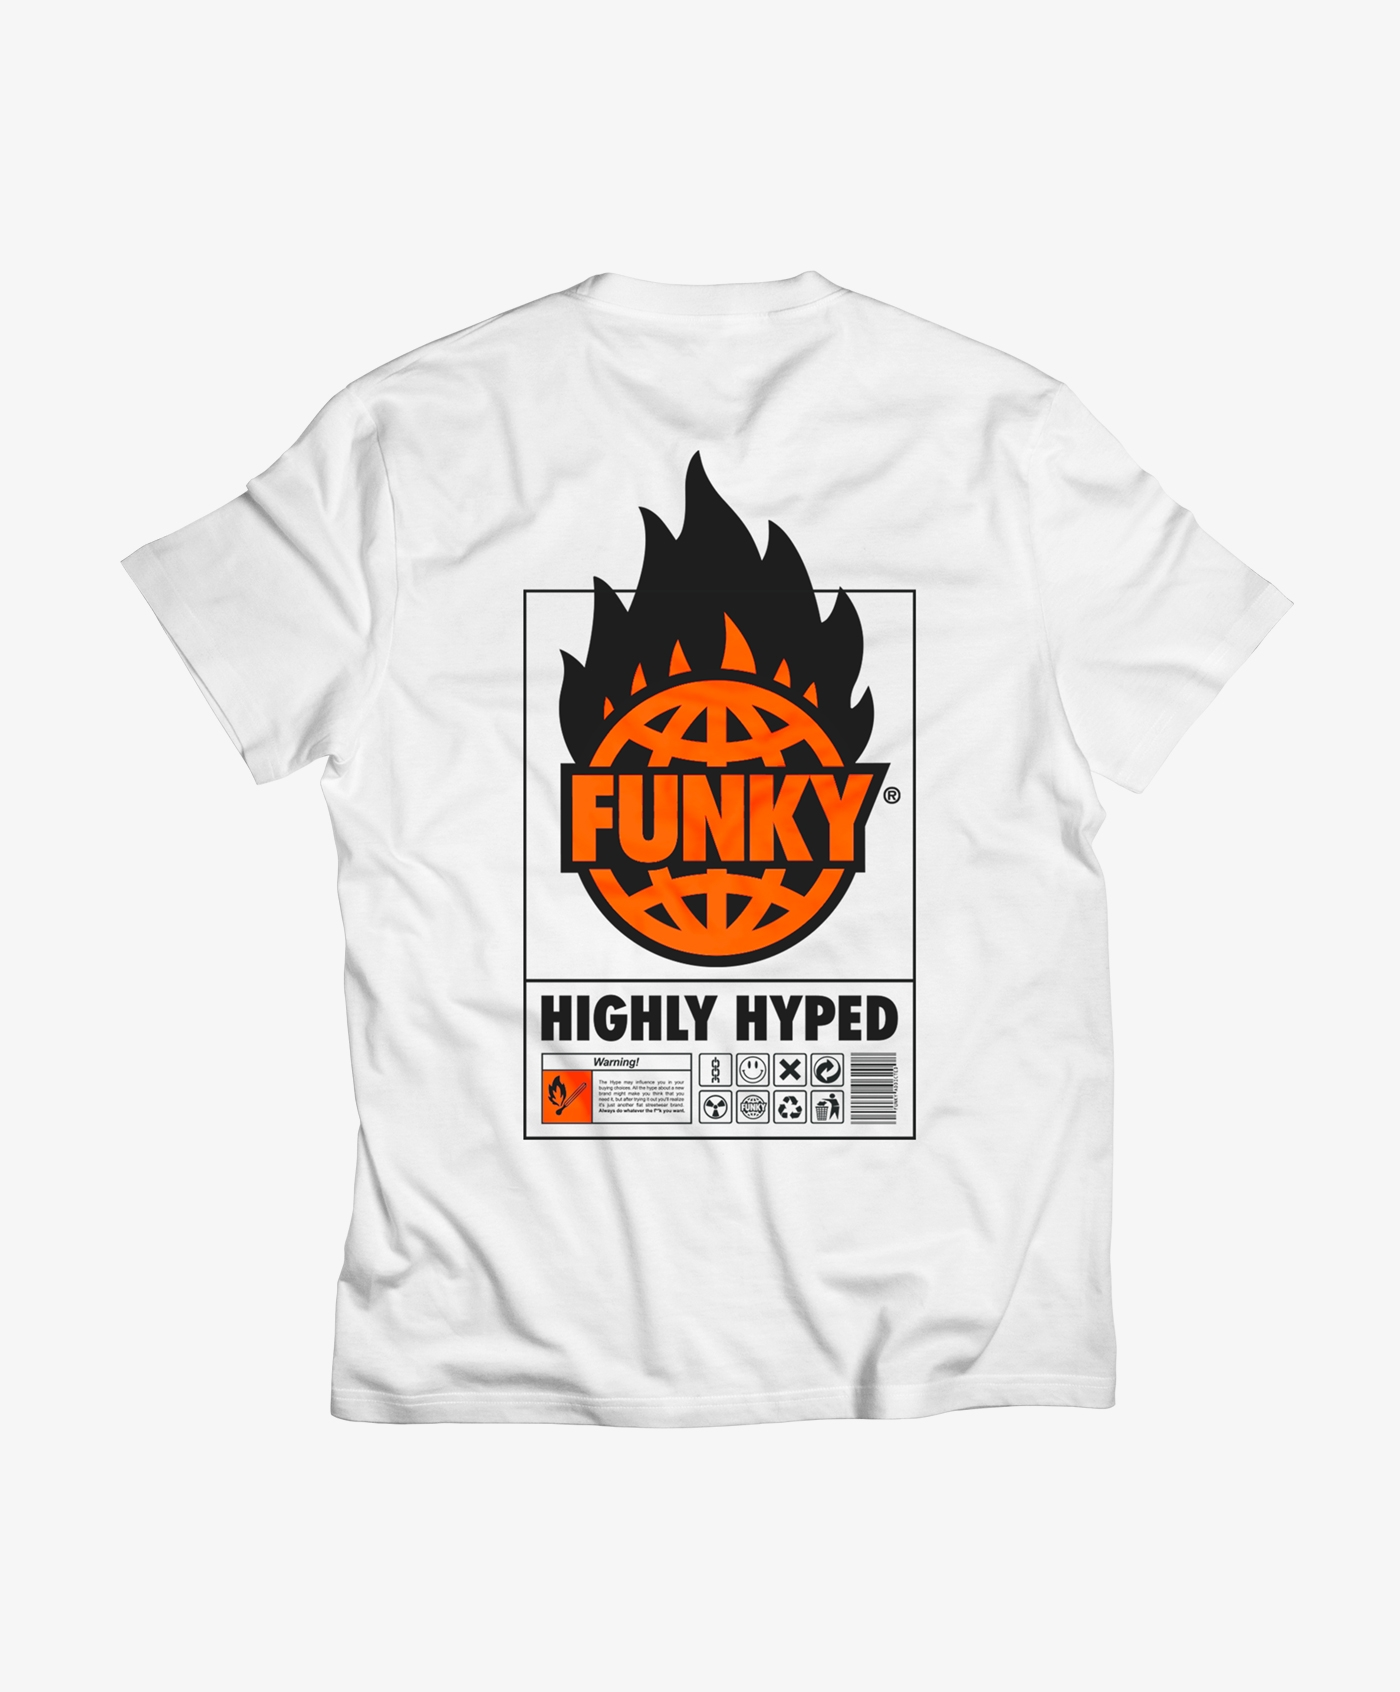 funky-hype-tee-white-back